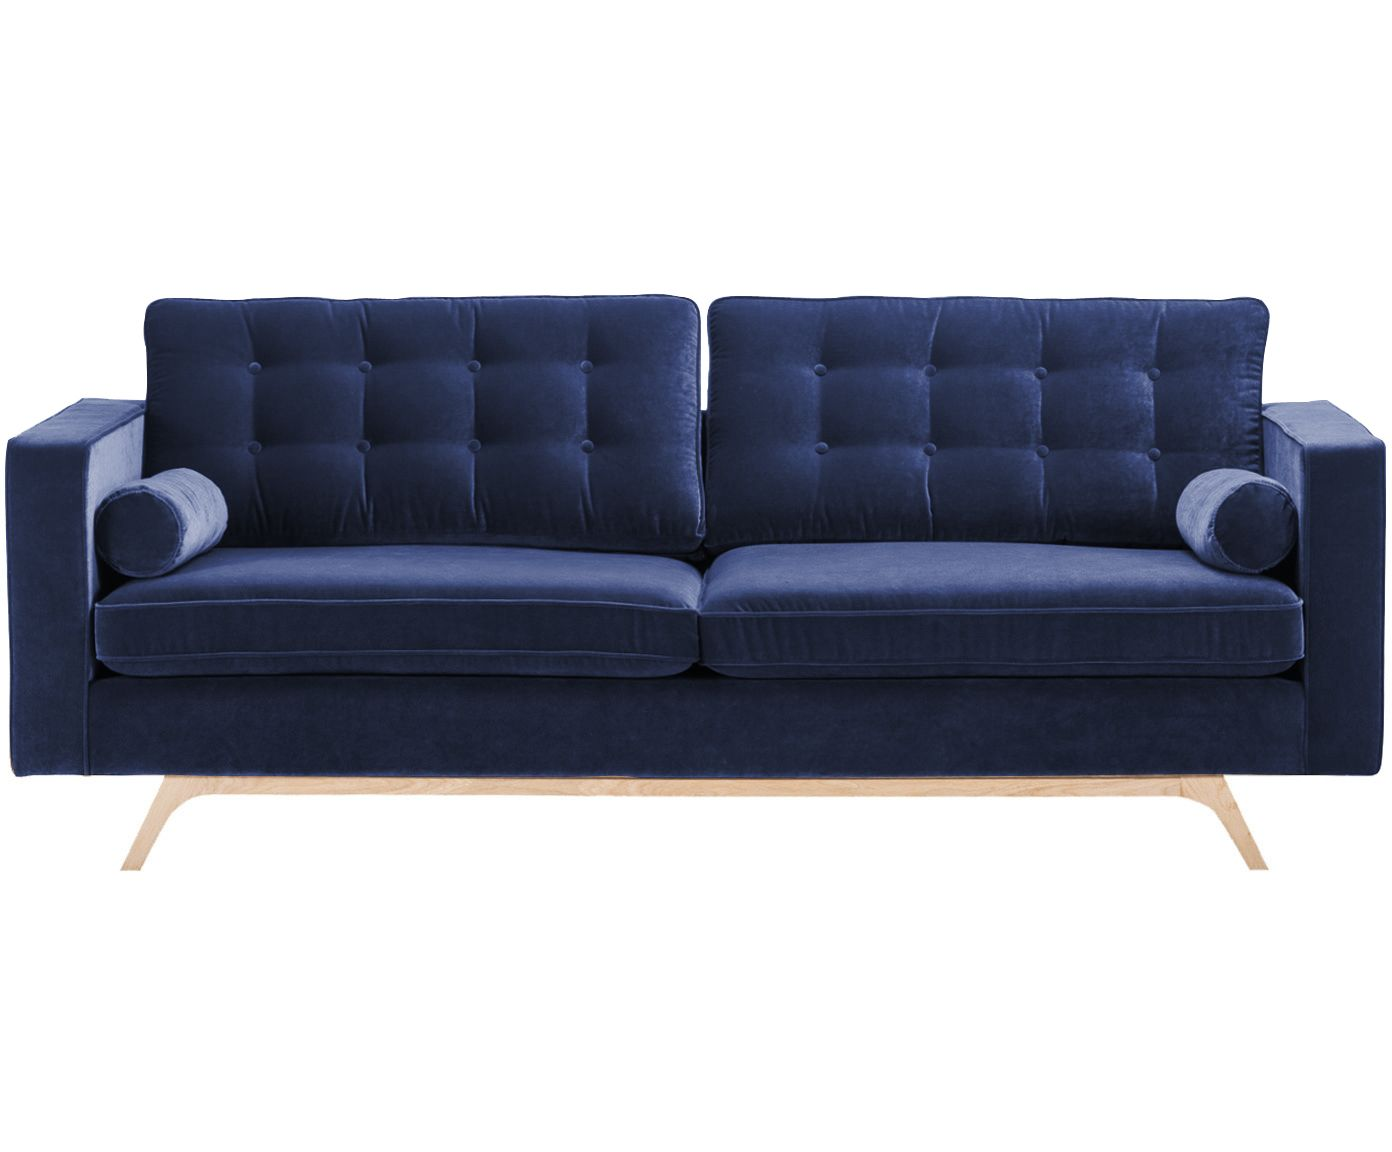 Chesterfield Sessel Samt Anna Sofa Samt Blau Wohn Design